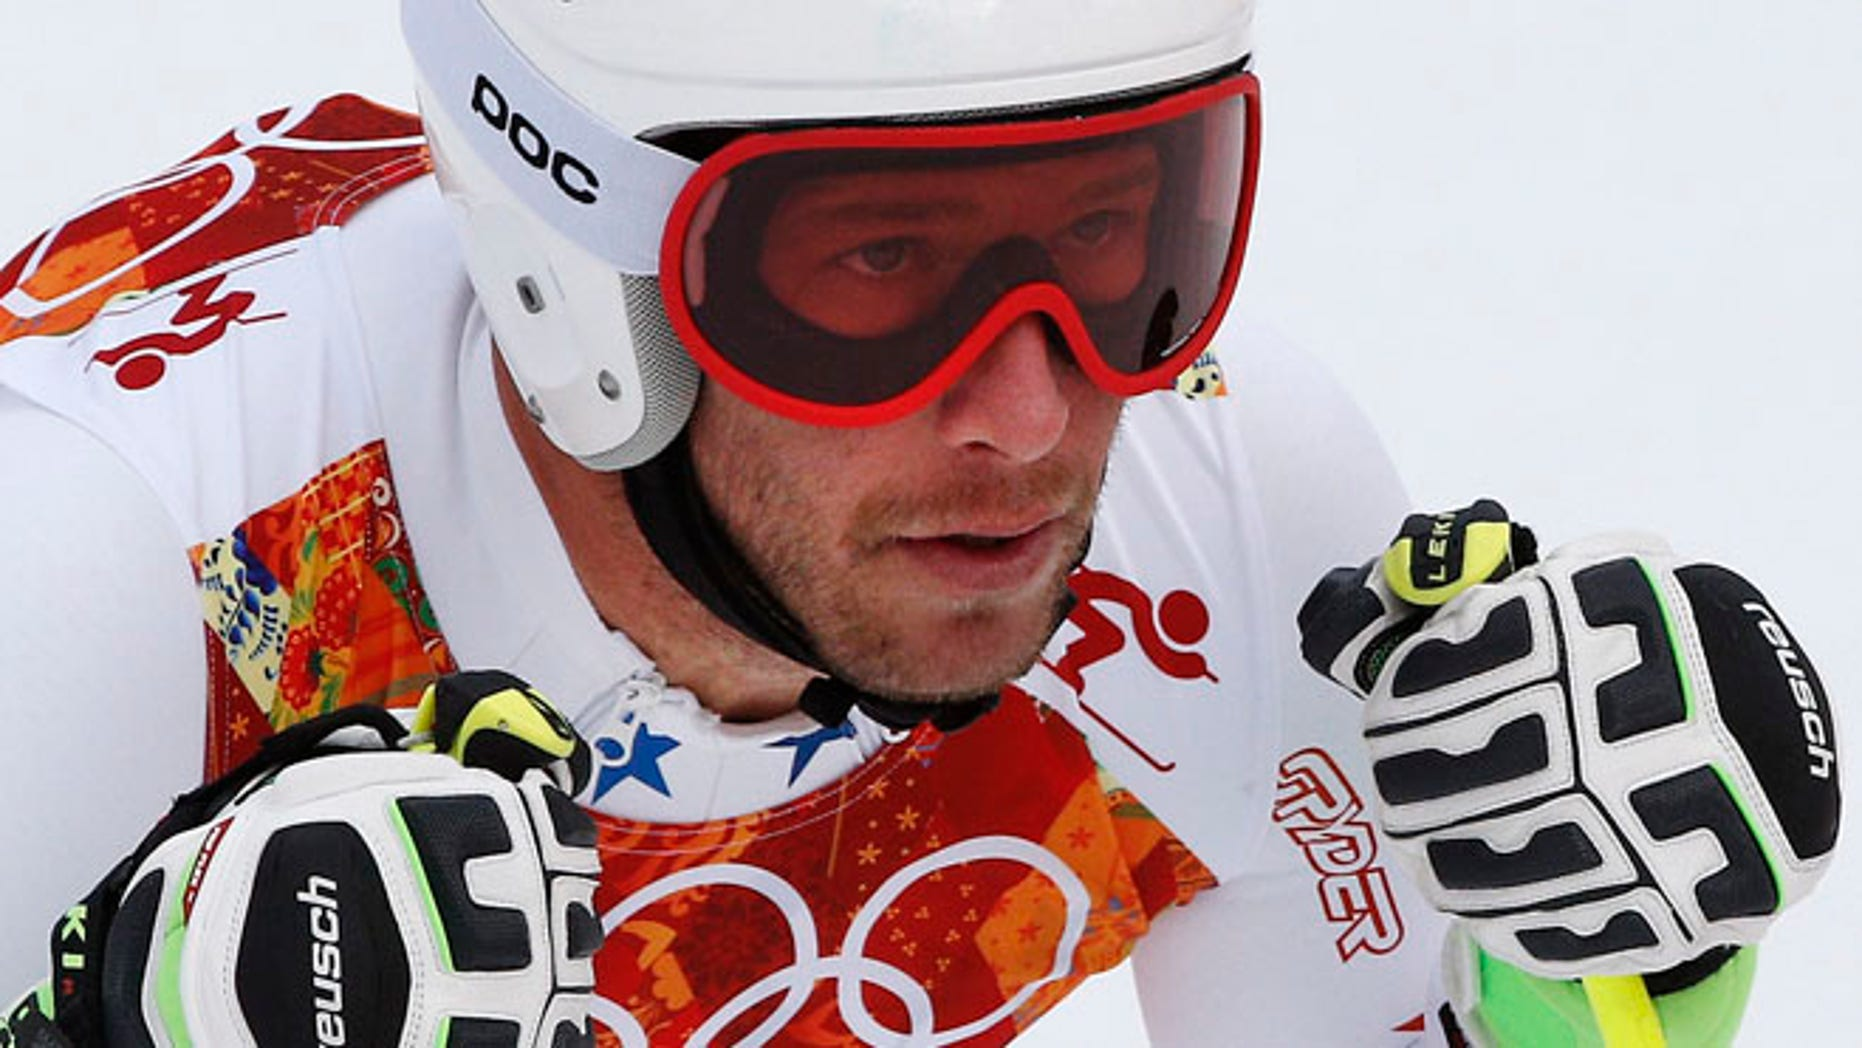 Feb. 11, 2014: United States' Bode Miller pauses in the finish area after completing Men's super combined downhill training at the Sochi 2014 Winter Olympics in Krasnaya Polyana, Russia.